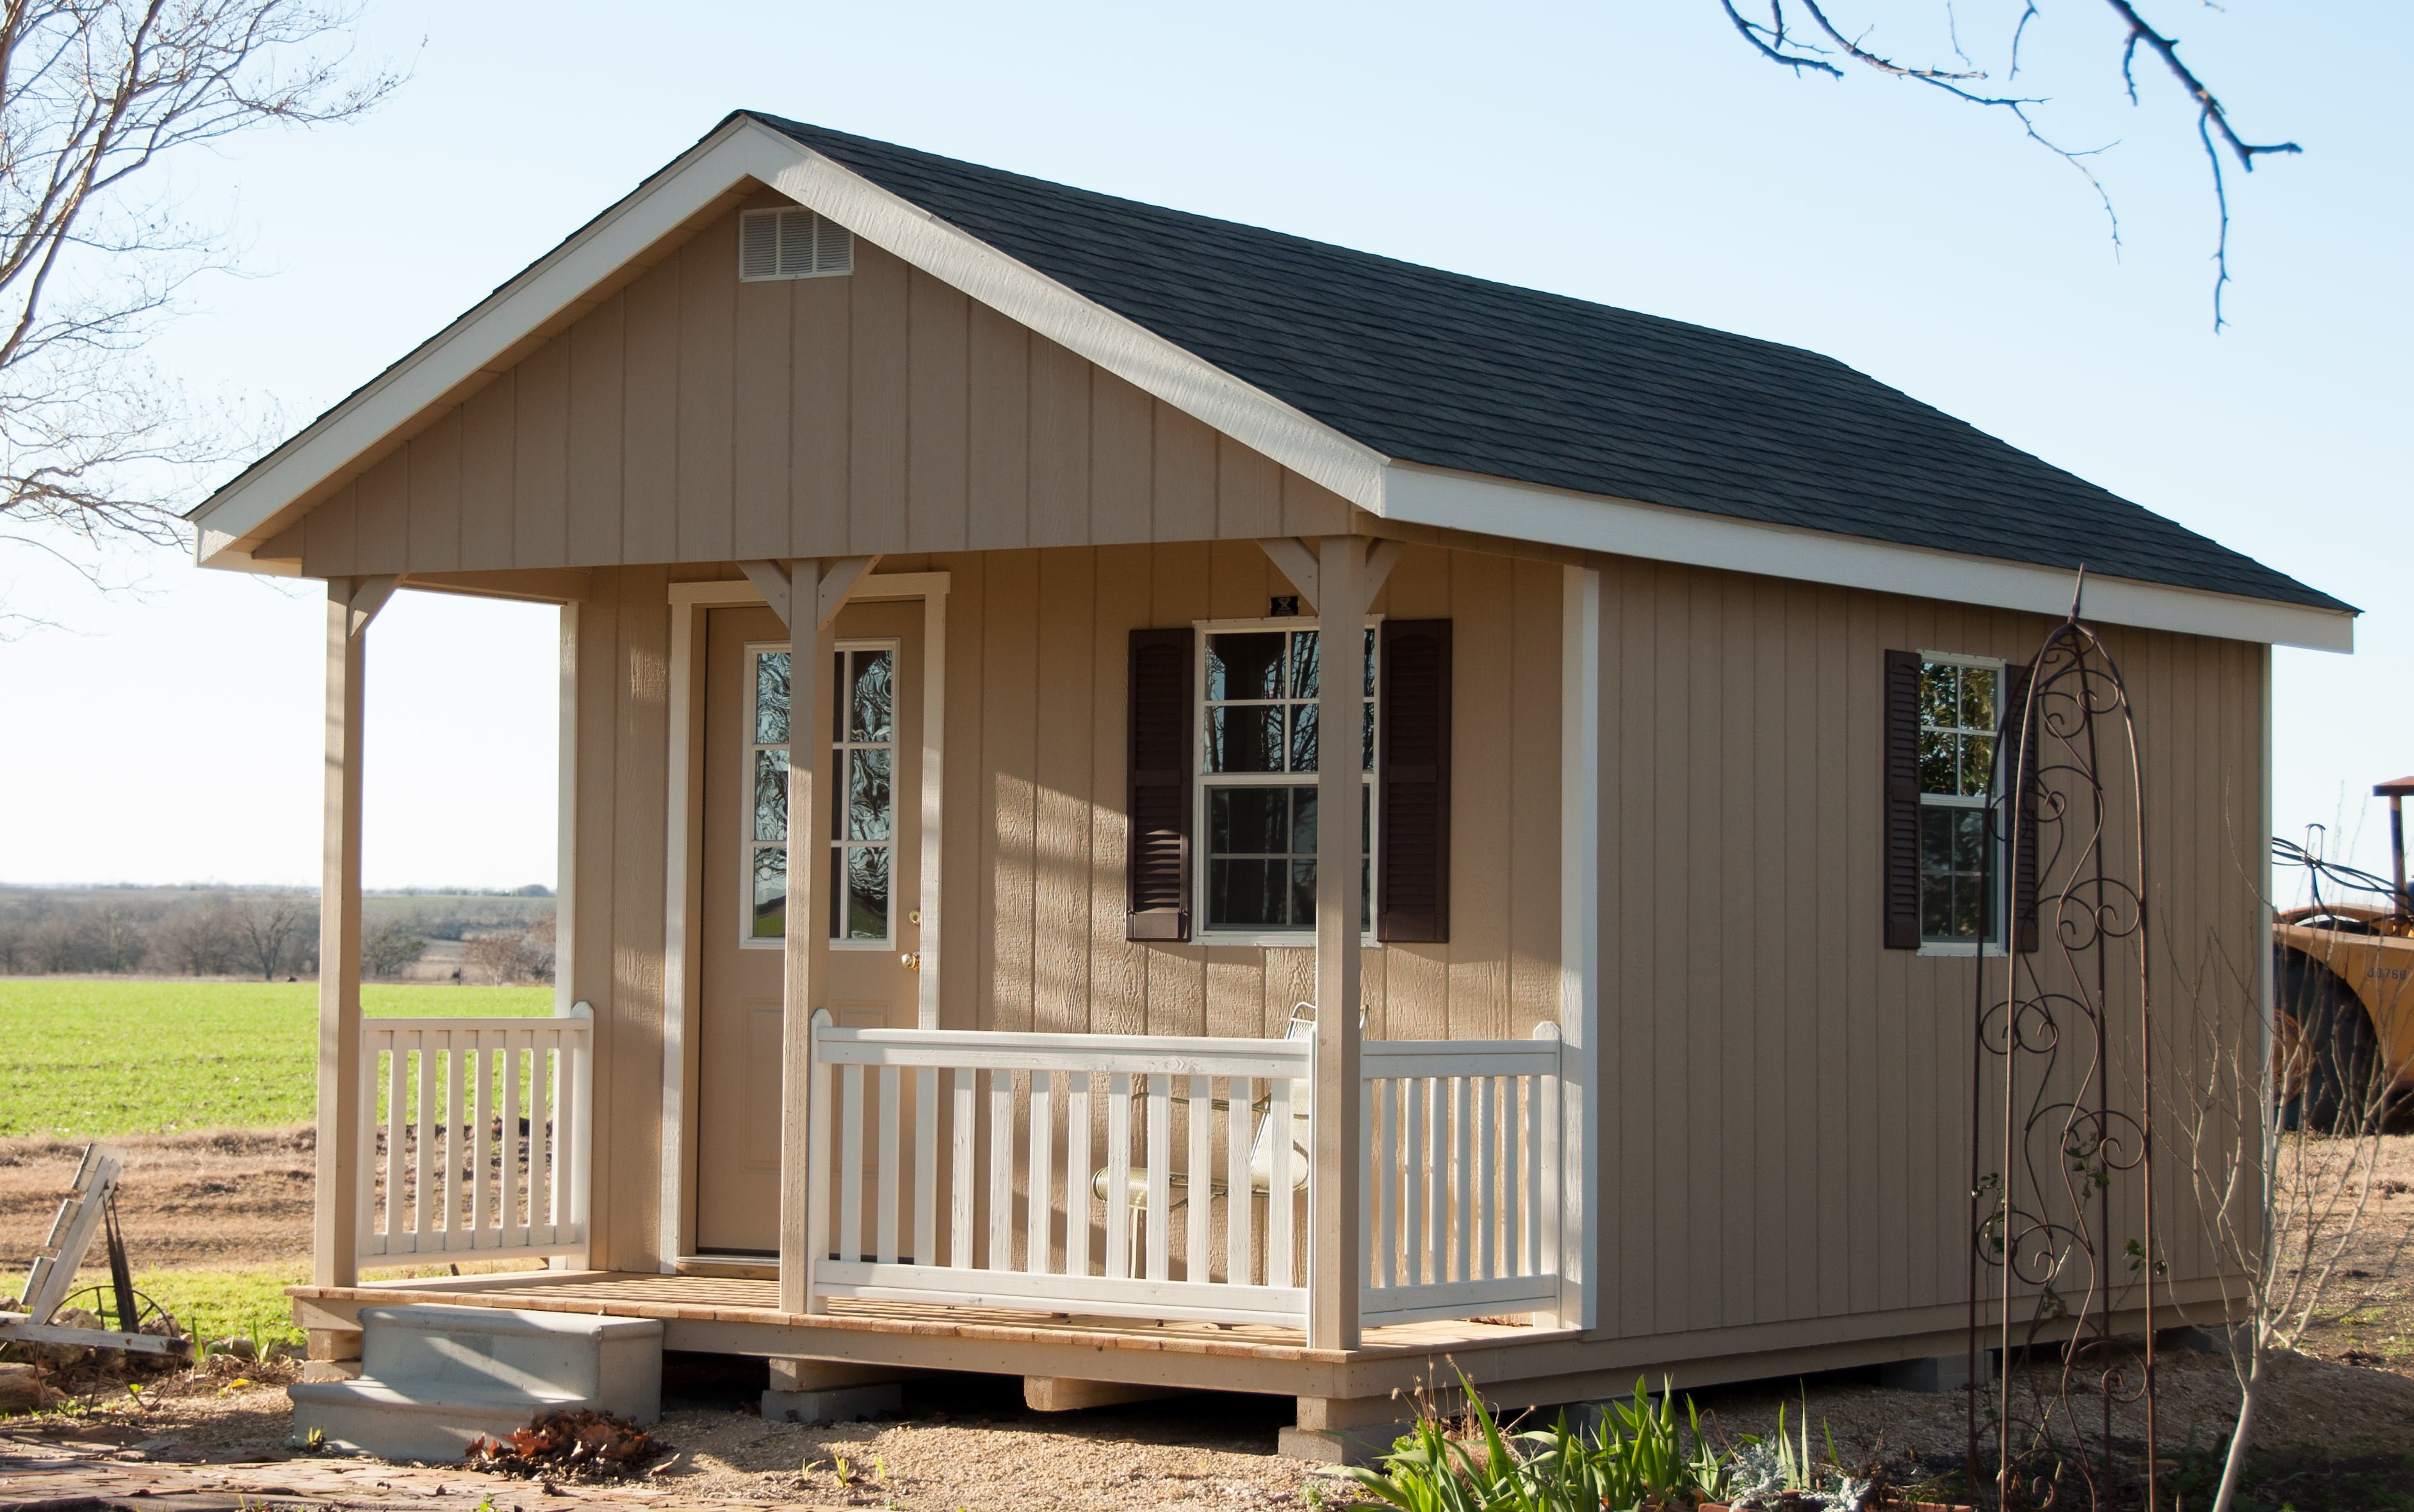 austin nw for koa in site lodging cabins campgrounds texas type leander sale